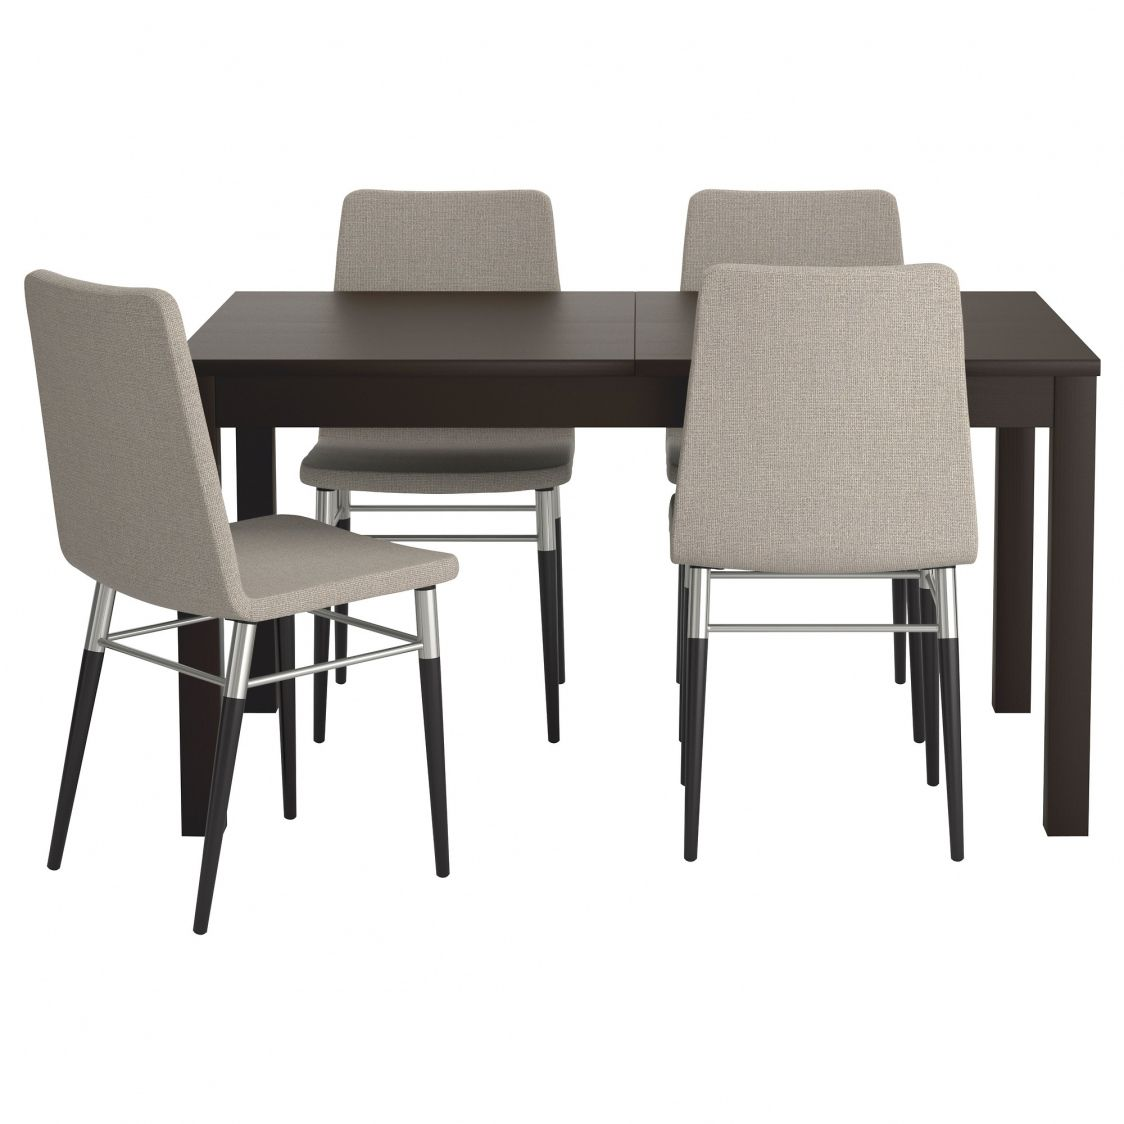 Ikea Dining Room Set  Best Modern Furniture Check More At Http Unique Ikea Dining Room Chair Design Ideas